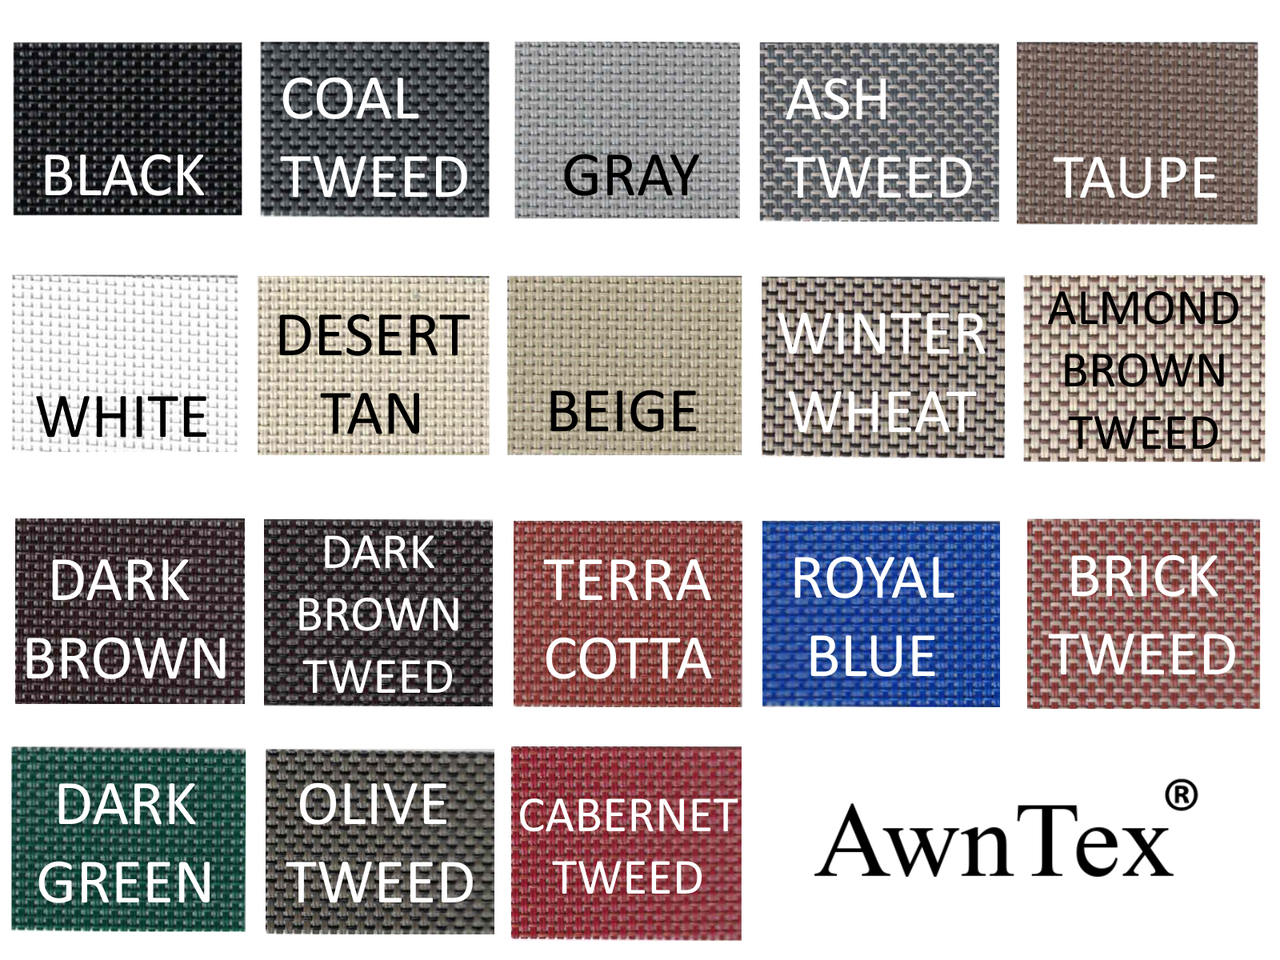 The Tank Beret by SLO Sail and Canvas is available in many colors of high quality Awntex 160 Vinyl Mesh.